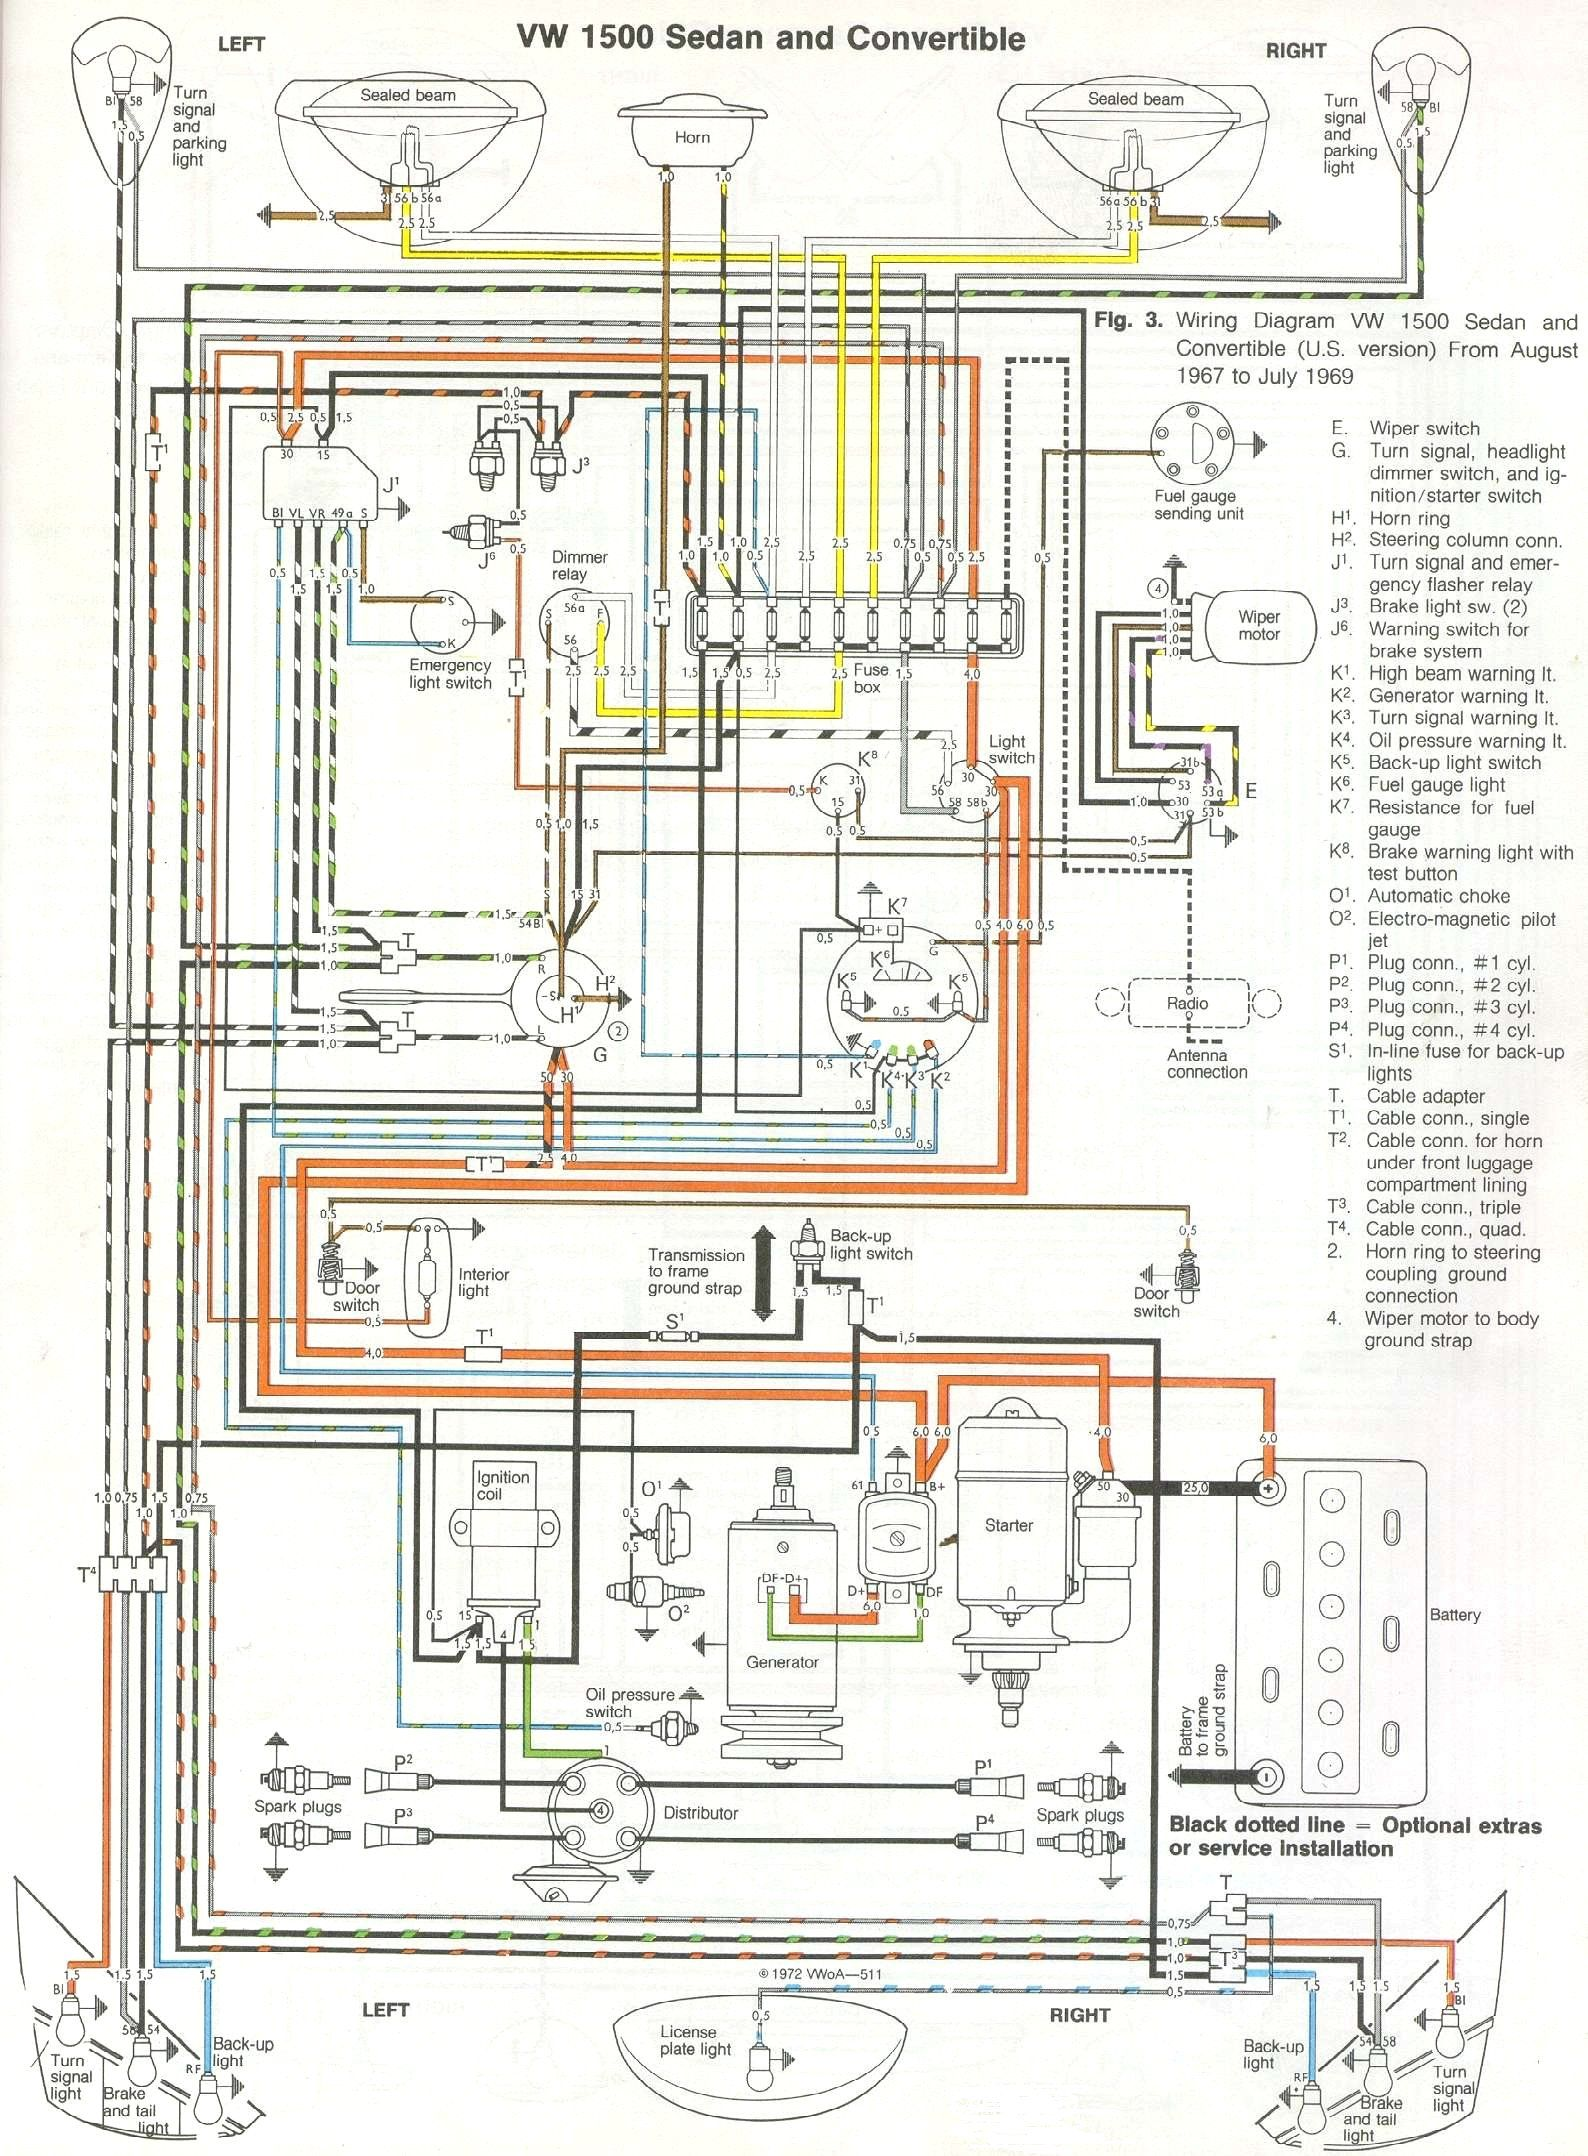 58 vw bus wiring harness wiring diagram data val 1971 vw bus wiring harness wiring diagrams [ 1588 x 2156 Pixel ]